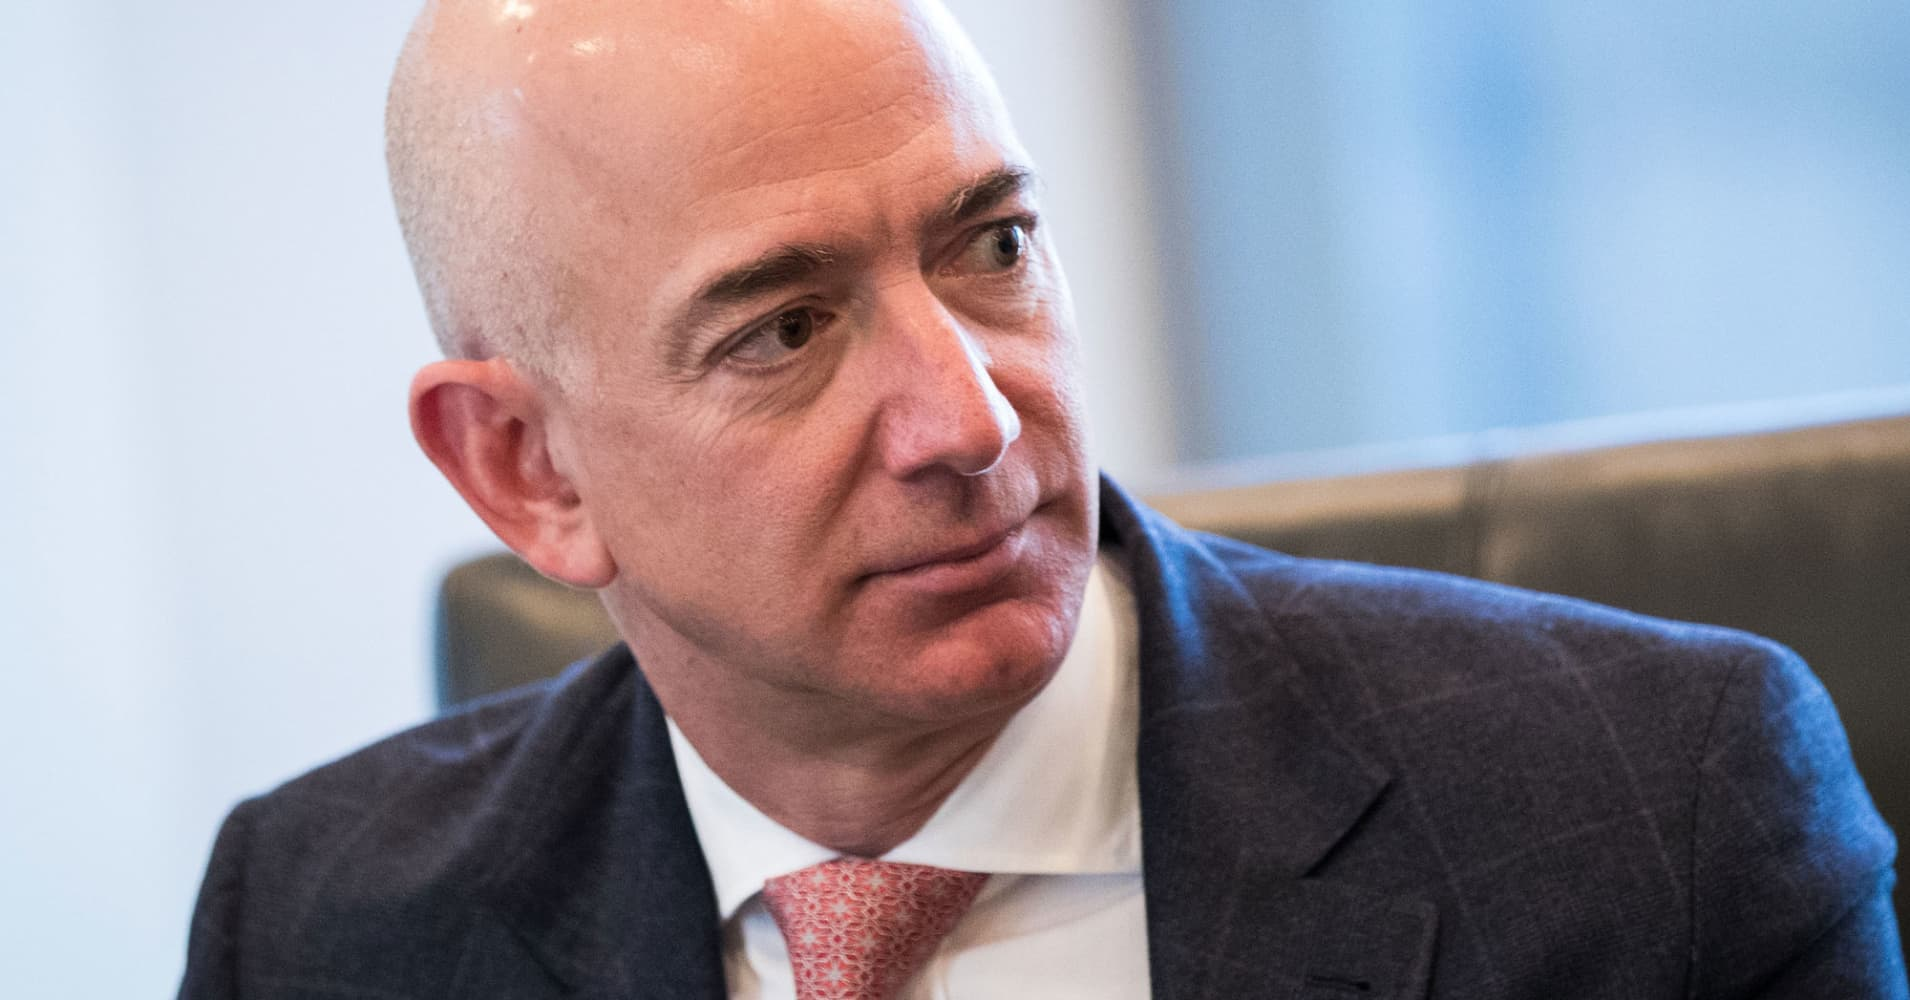 Amazon's stock may struggle awhile after this epic earnings miss, history shows